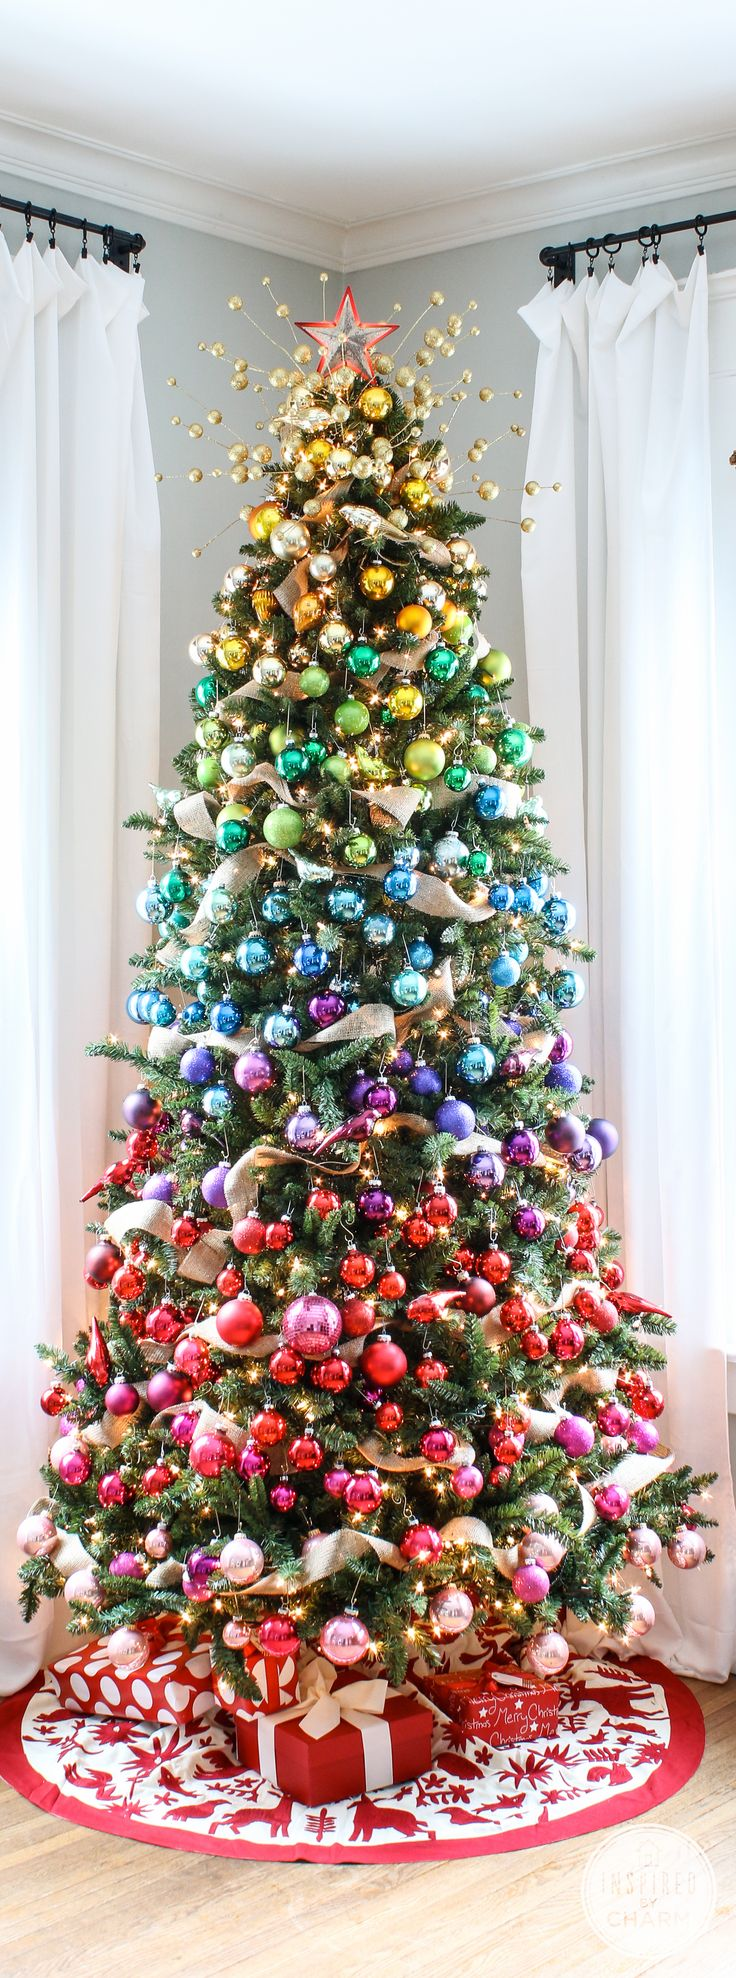 the most colorful christmas trees and decorations you have ever seen homesthetics 2 - Colorful Christmas Tree Decorations